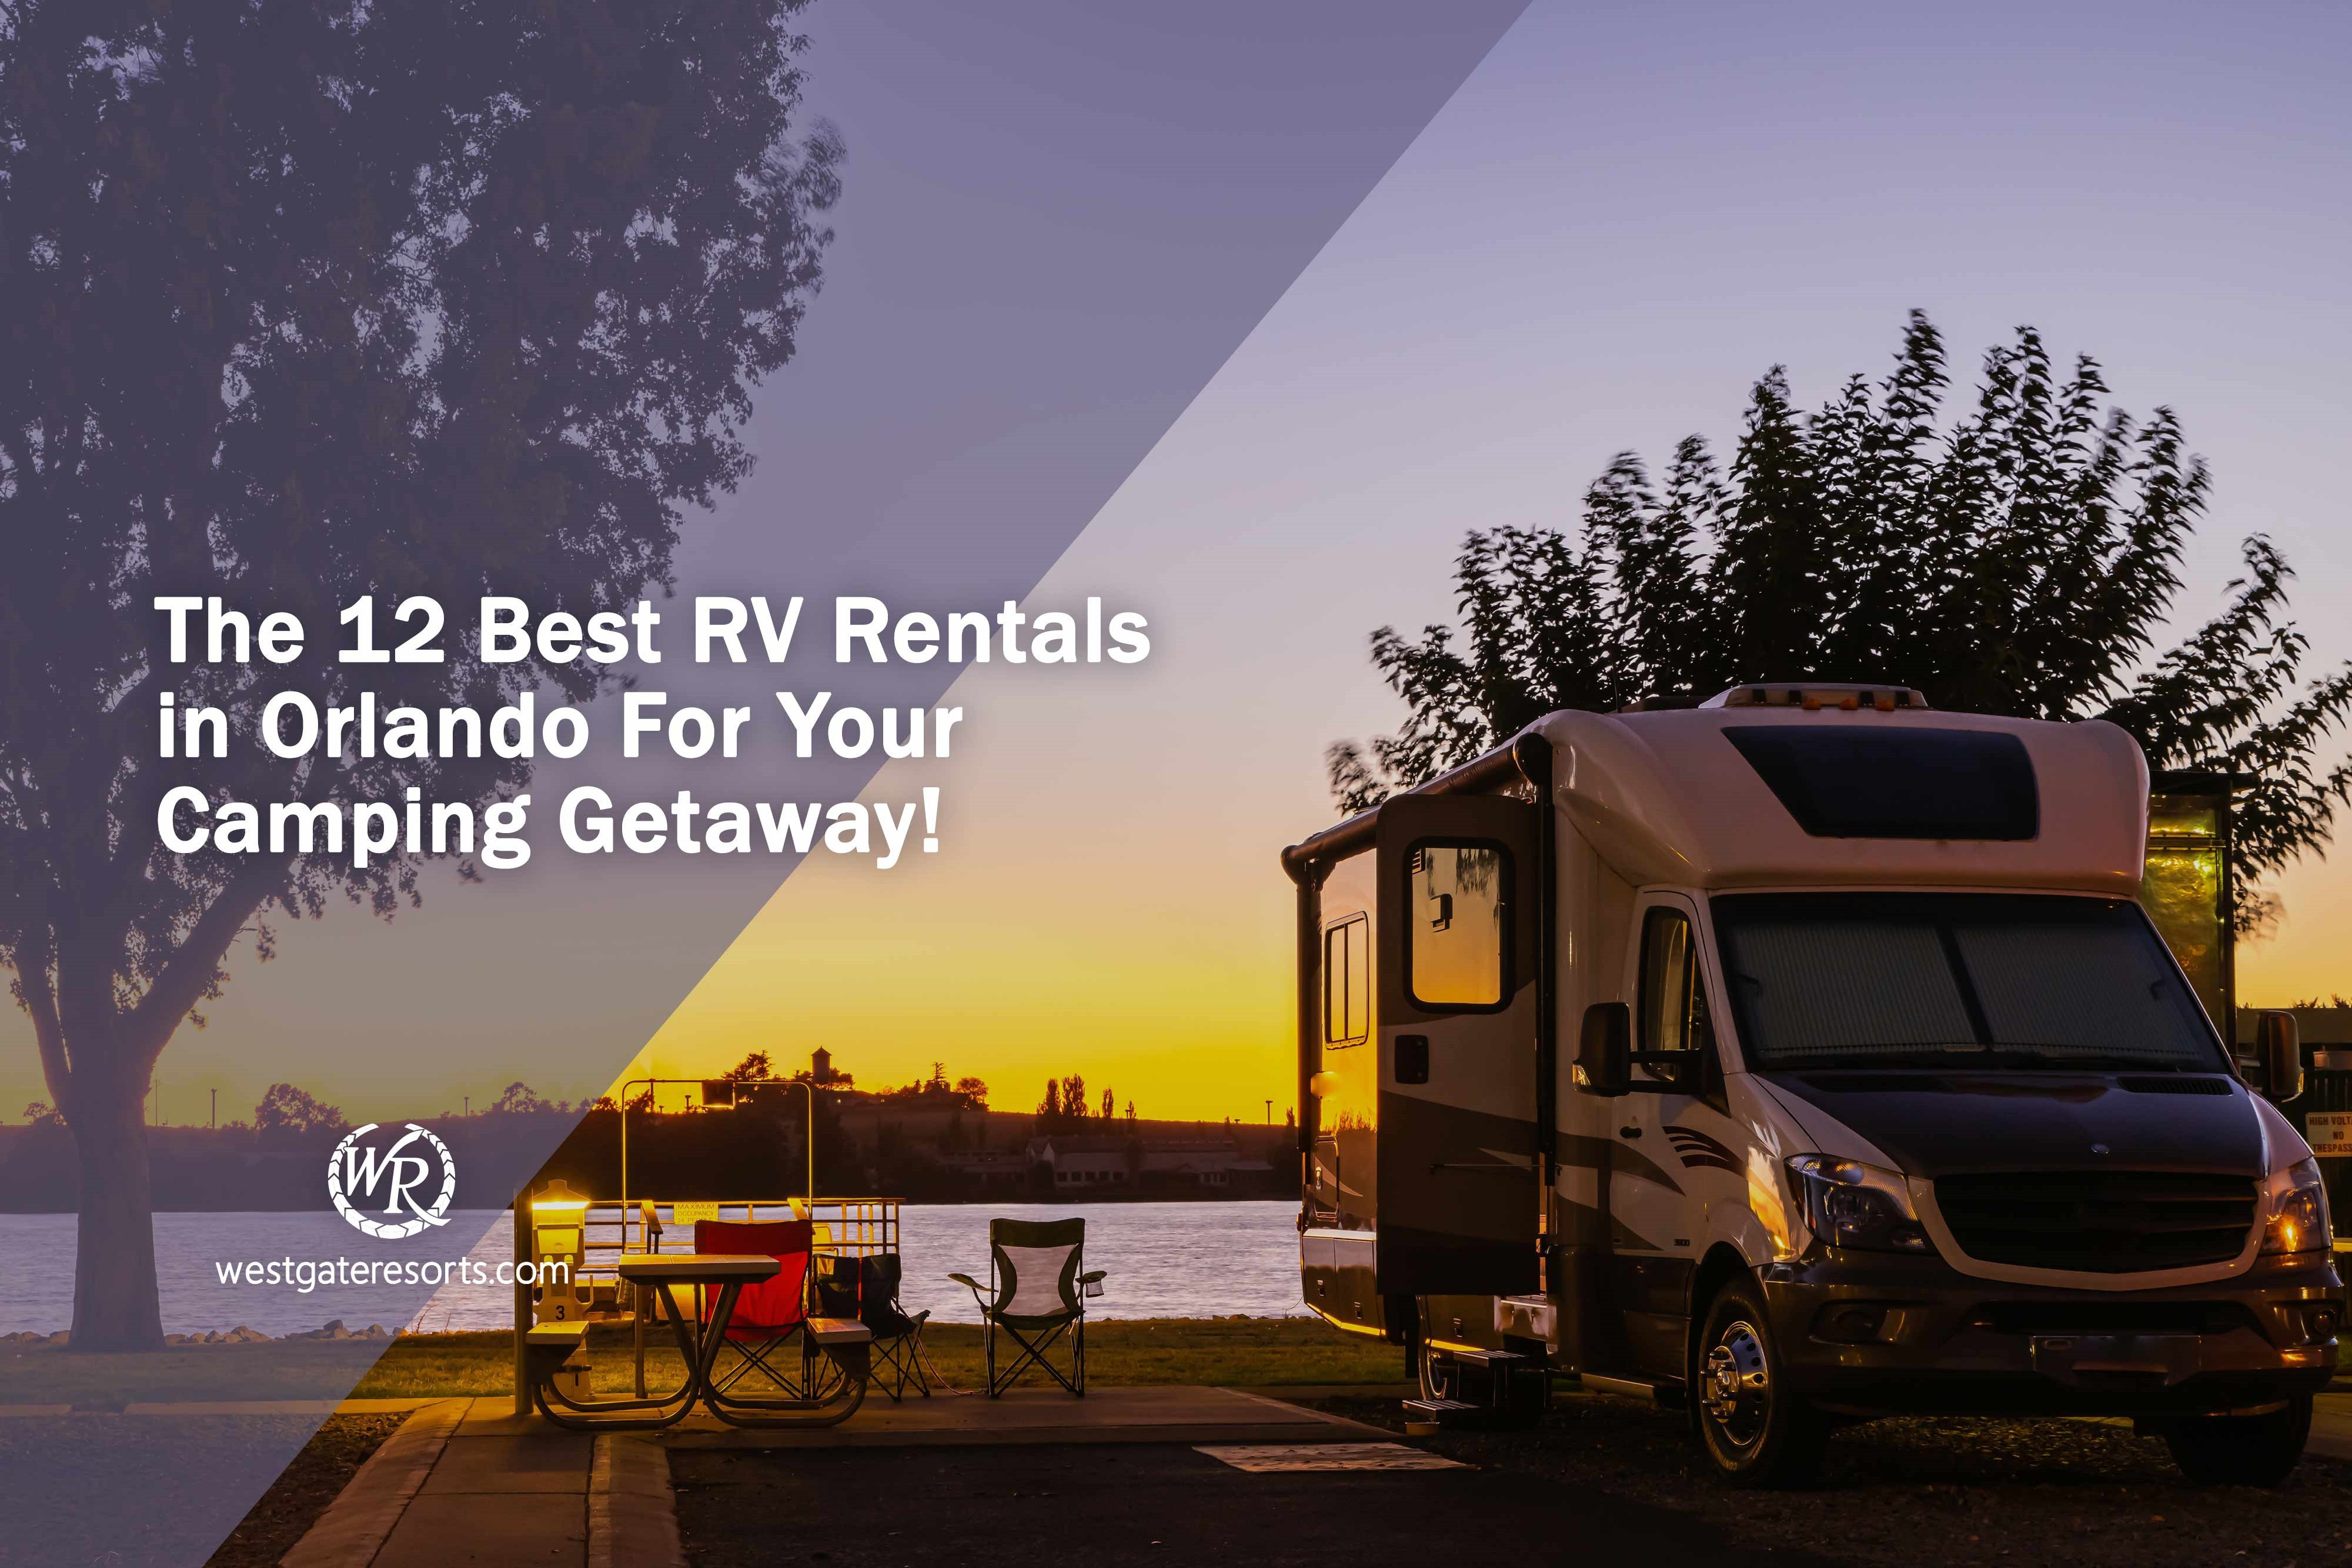 The 12 Best RV Rentals in Orlando For Your Camping Getaway!